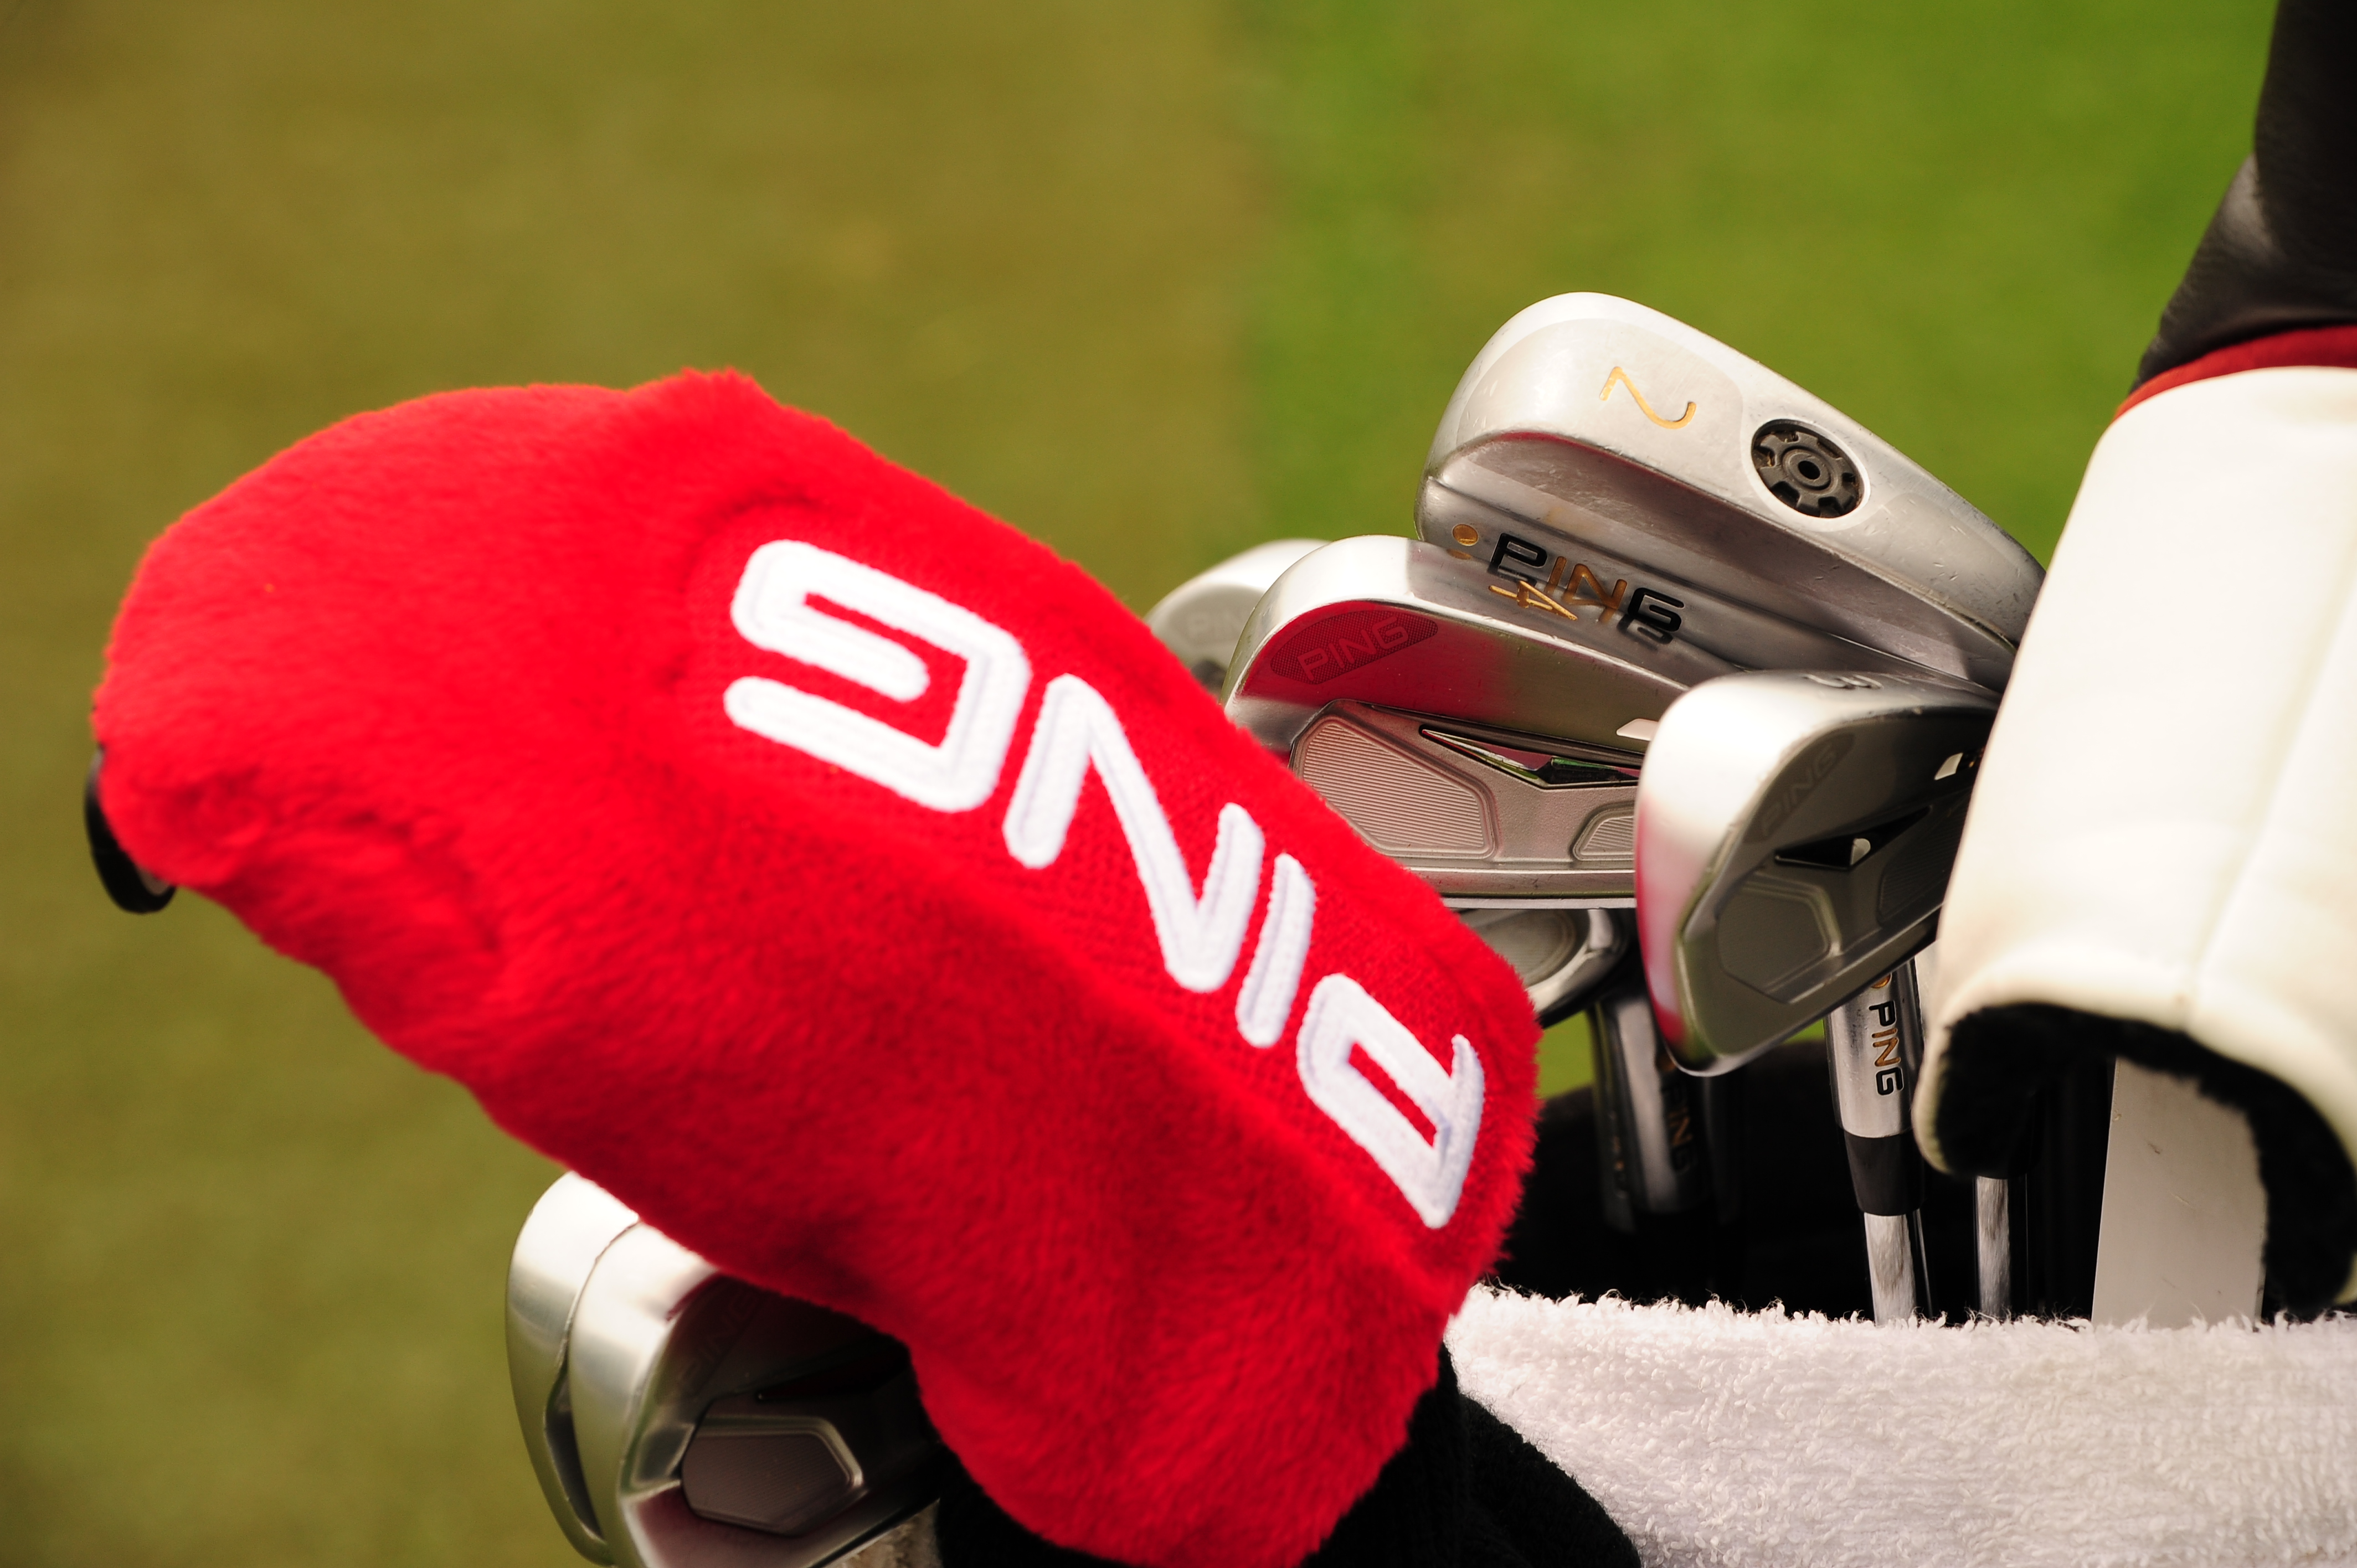 Jason Gore carries a collection of PING clubs including S55 blade irons and a Rapture driving iron.